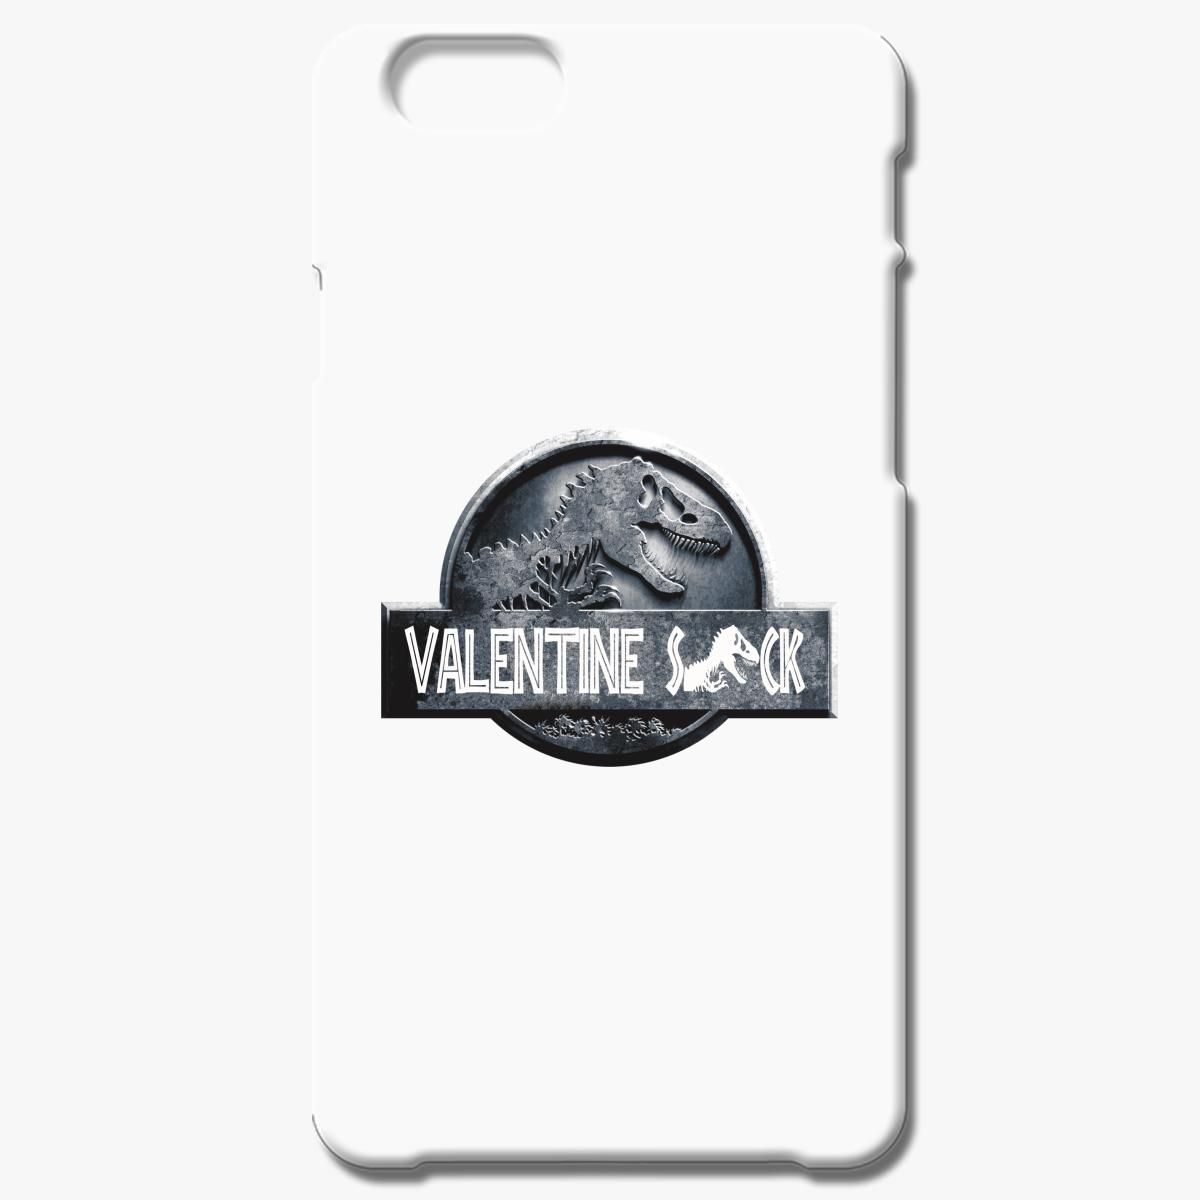 Valentine Jurassic Sck Iphone 6 6s Plus Case